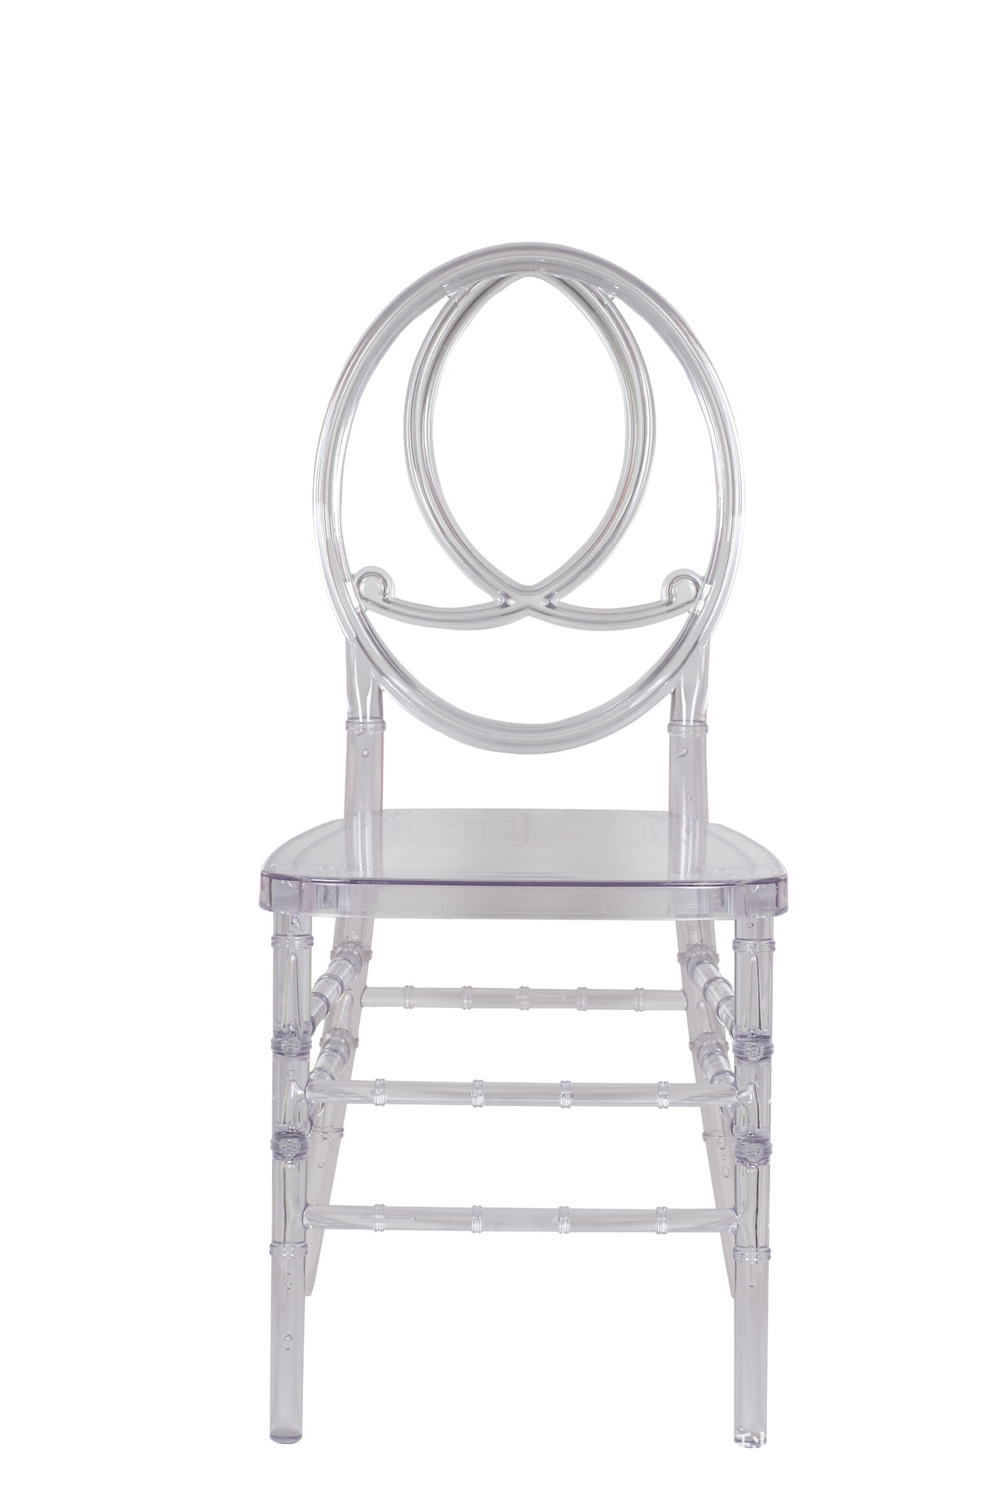 acrylic outdoor furniture. Factory Direct, Crystal Acrylic, Bamboo Chairs Outdoor Wedding Round Back-in CD Racks From Furniture On Aliexpress.com | Alibaba Group Acrylic